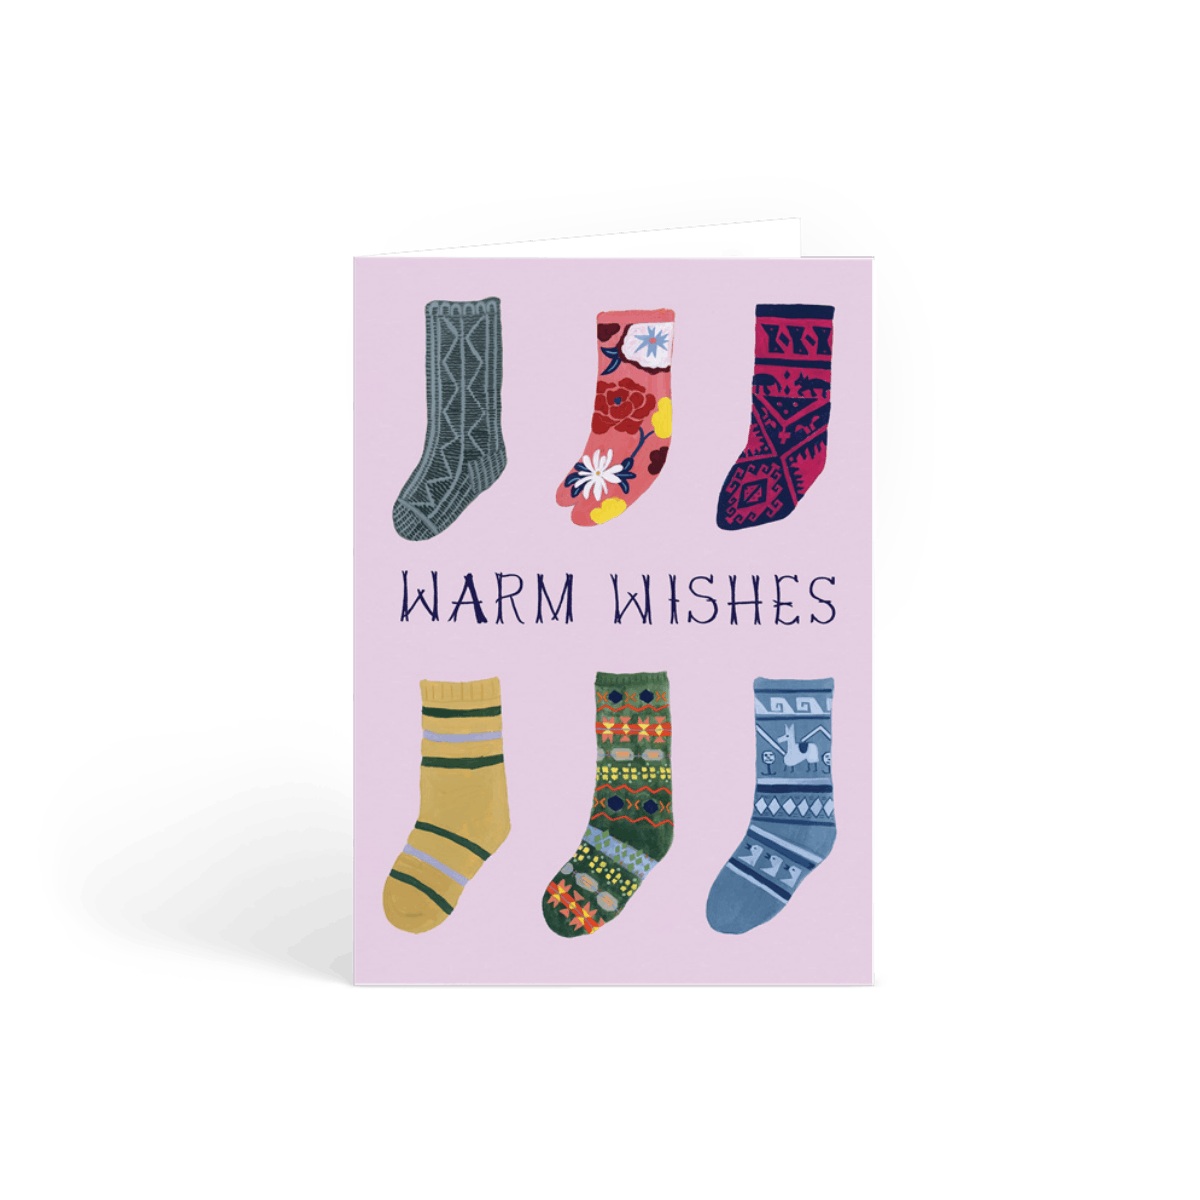 Https%3a%2f%2fwww.papier.com%2fproduct image%2f12936%2f2%2fwarm wishes socks 3261 front 1541416169.png?ixlib=rb 1.1